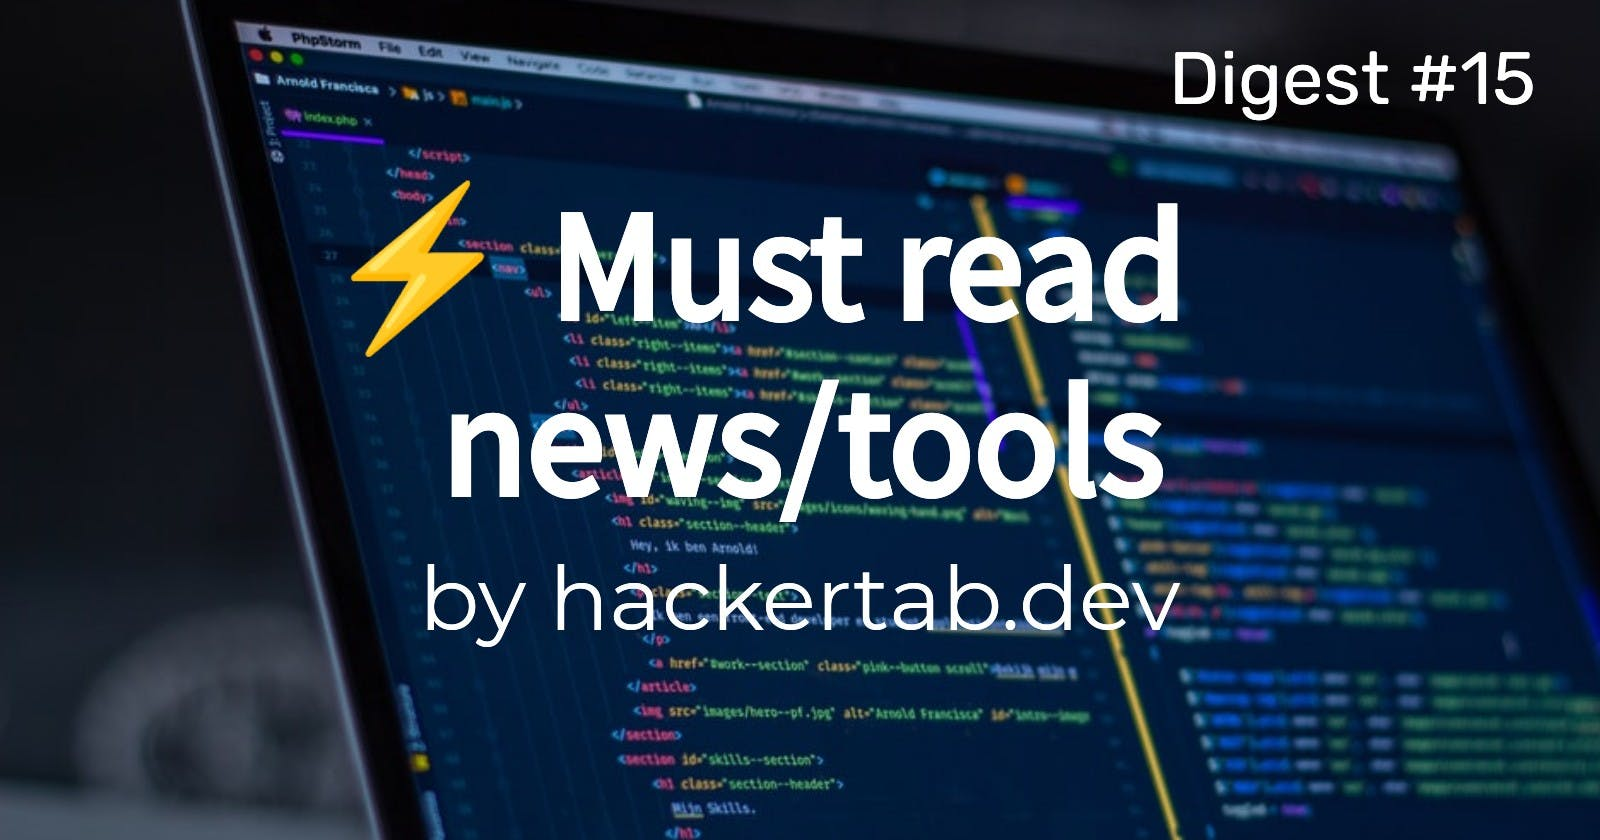 ⚡ Must read Tech news/tools of the day - Digest #15